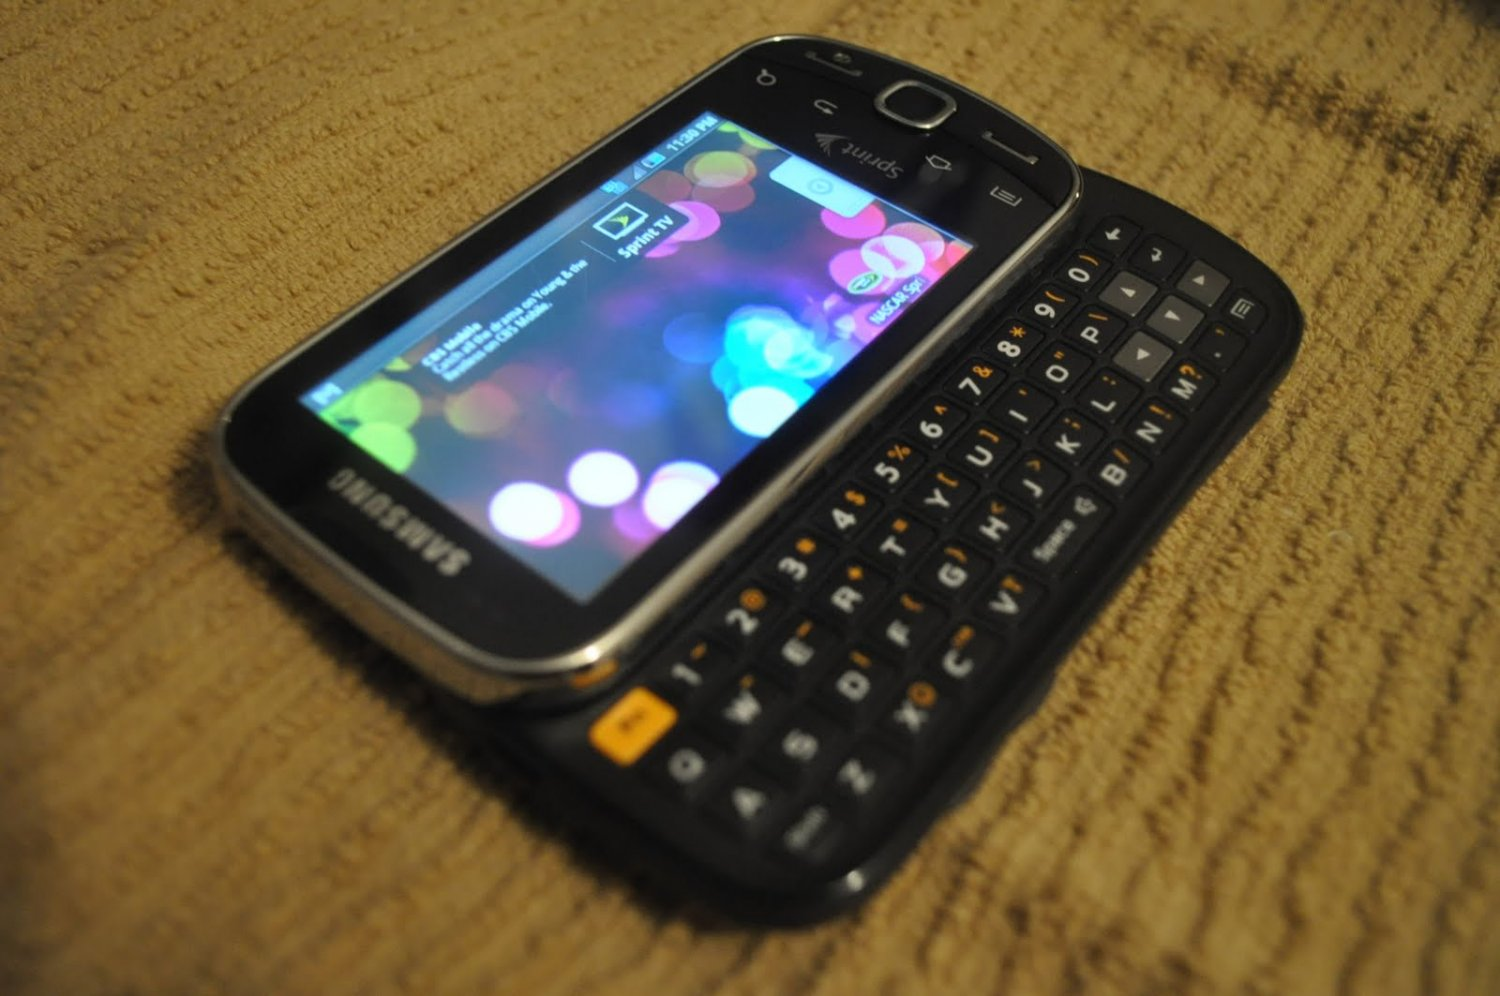 SPRINT SAMSUNG INTERCEPT TOUCH SCREEN ANDROID